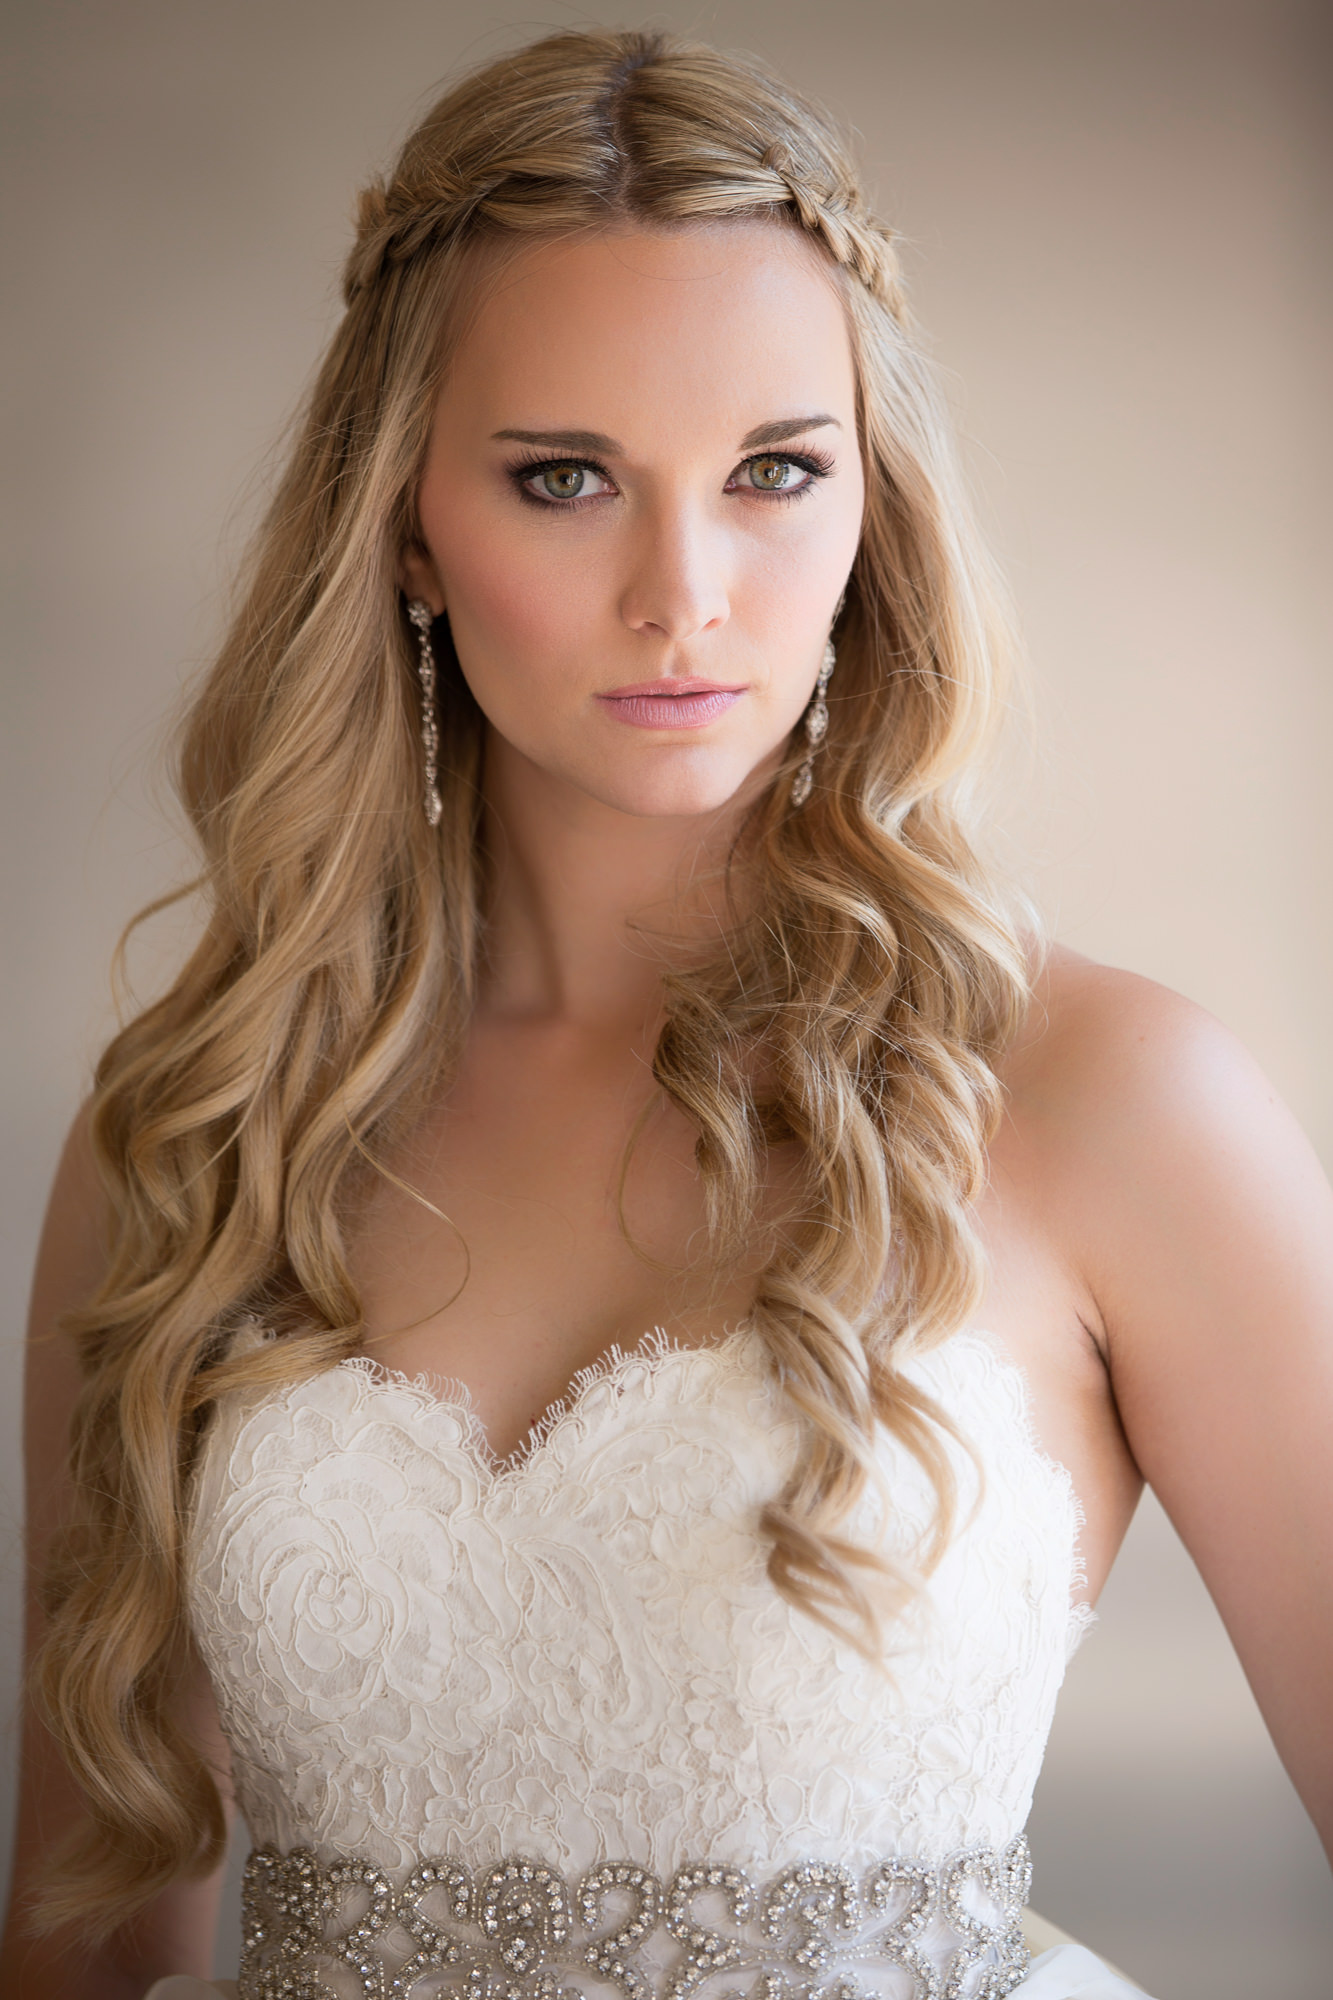 Blonde bride with soft pink lips and dramatic brown eyeliner - photo by Roberto Valenzuela - Los Angeles